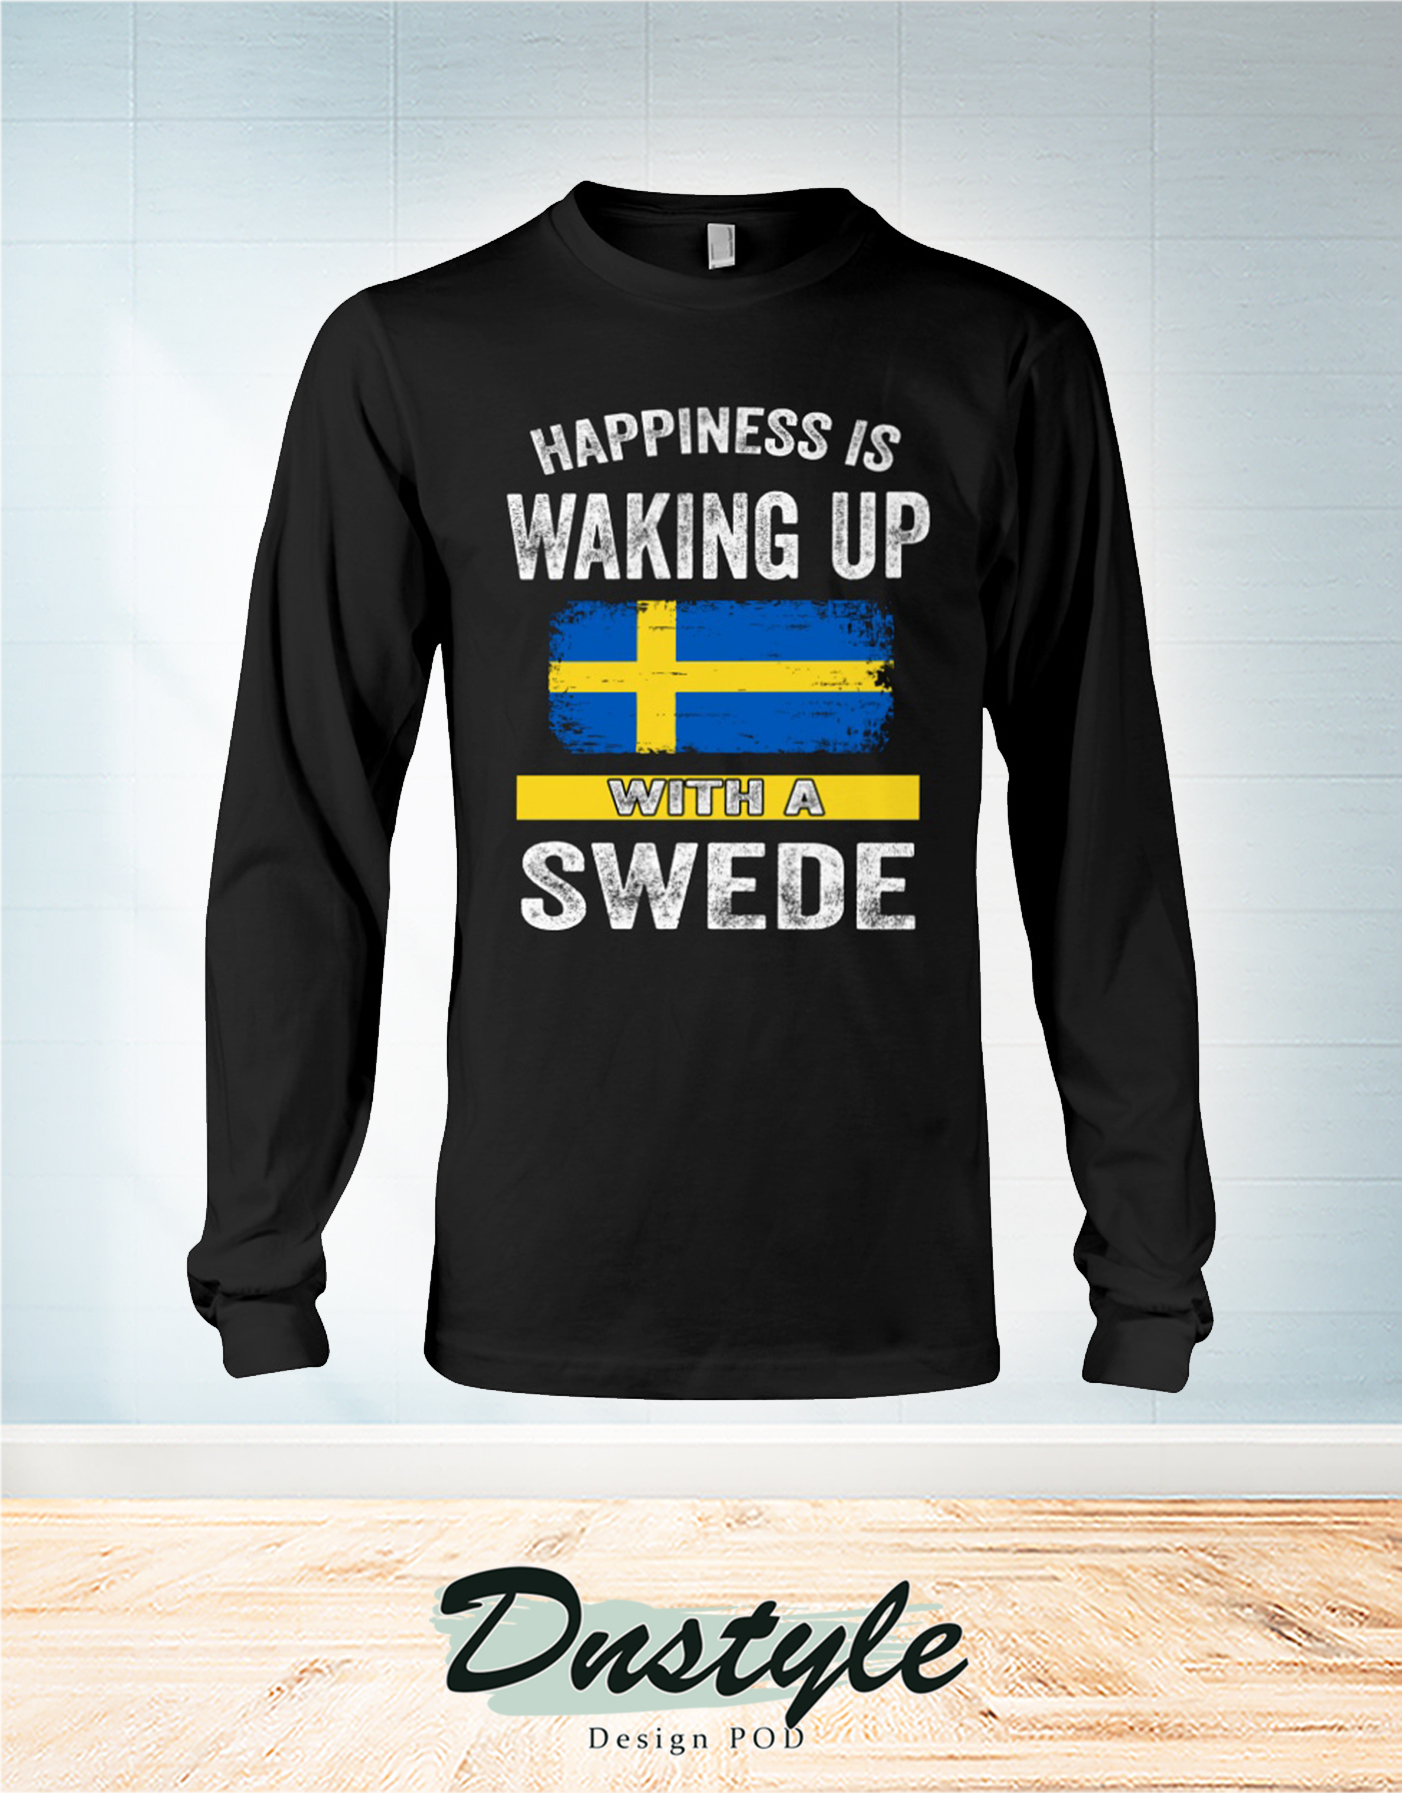 Happiness is waking up with a swede long sleeve